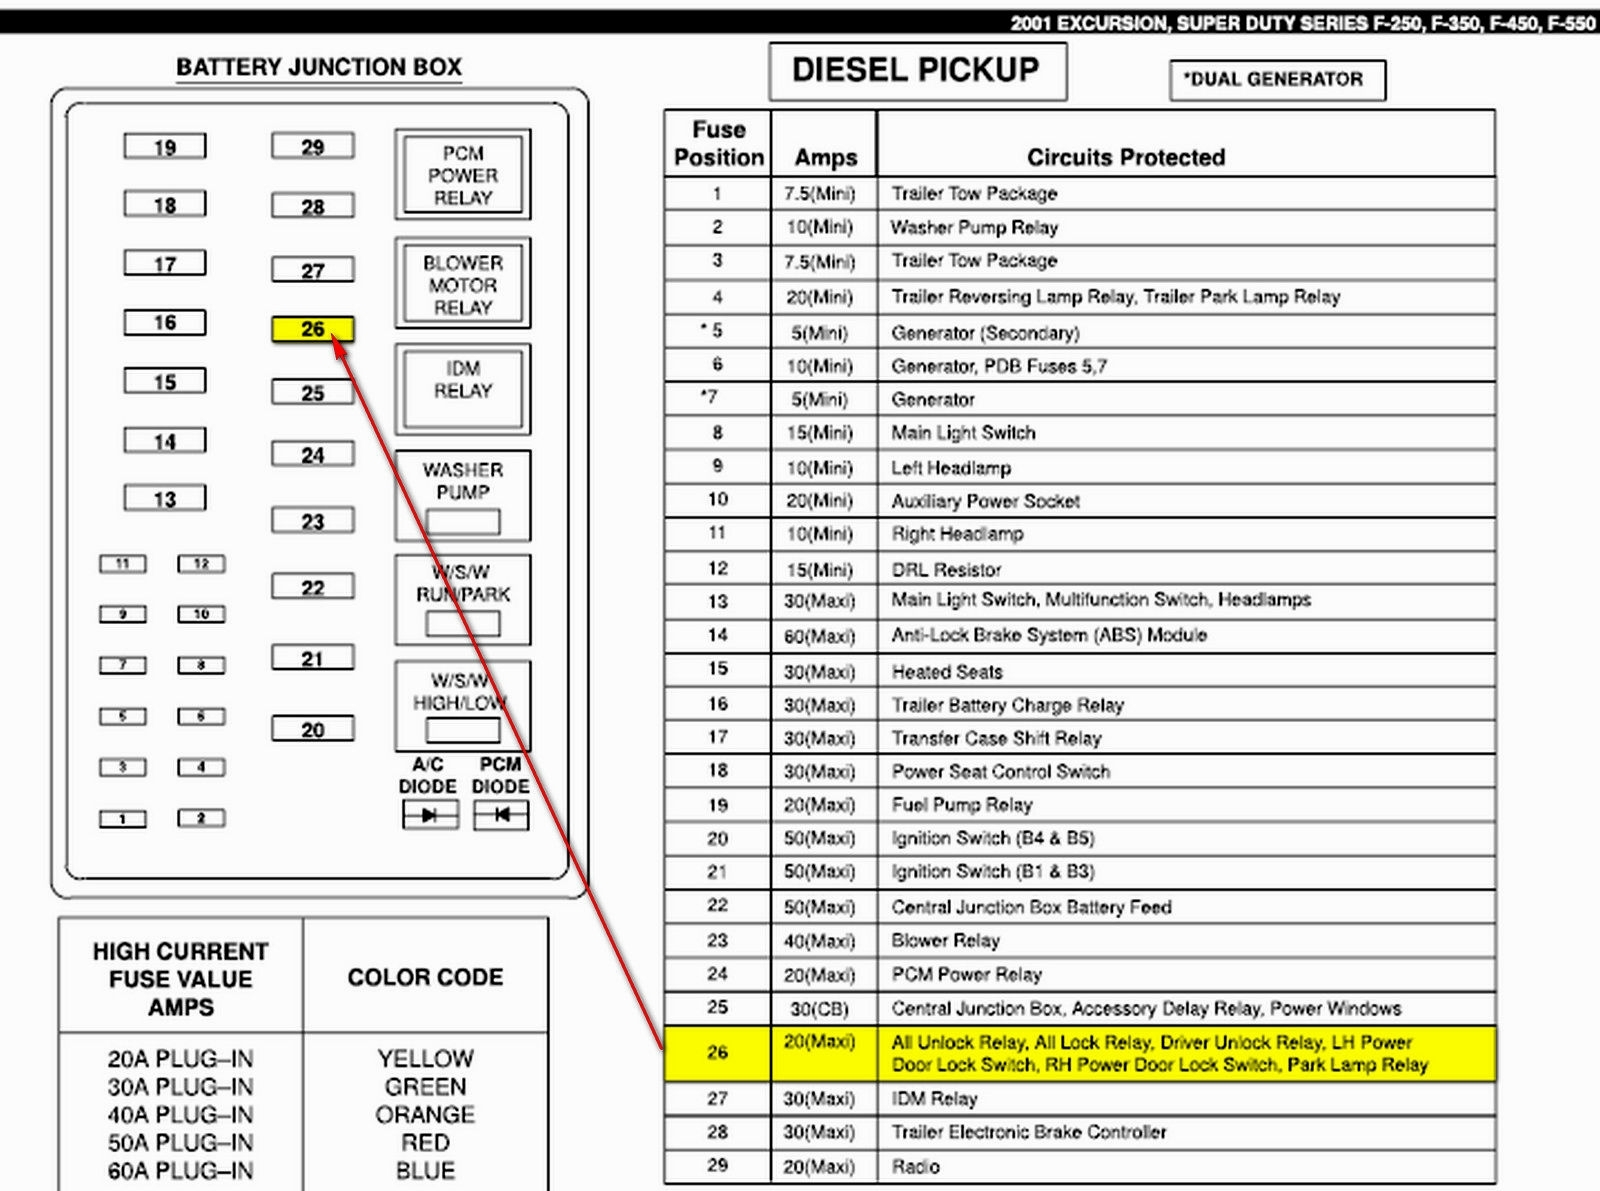 2001 Ford F 250 Fuse Panel Diagram - Ac Motor Wiring Diagram 480 Vac for Wiring  Diagram SchematicsWiring Diagram Schematics